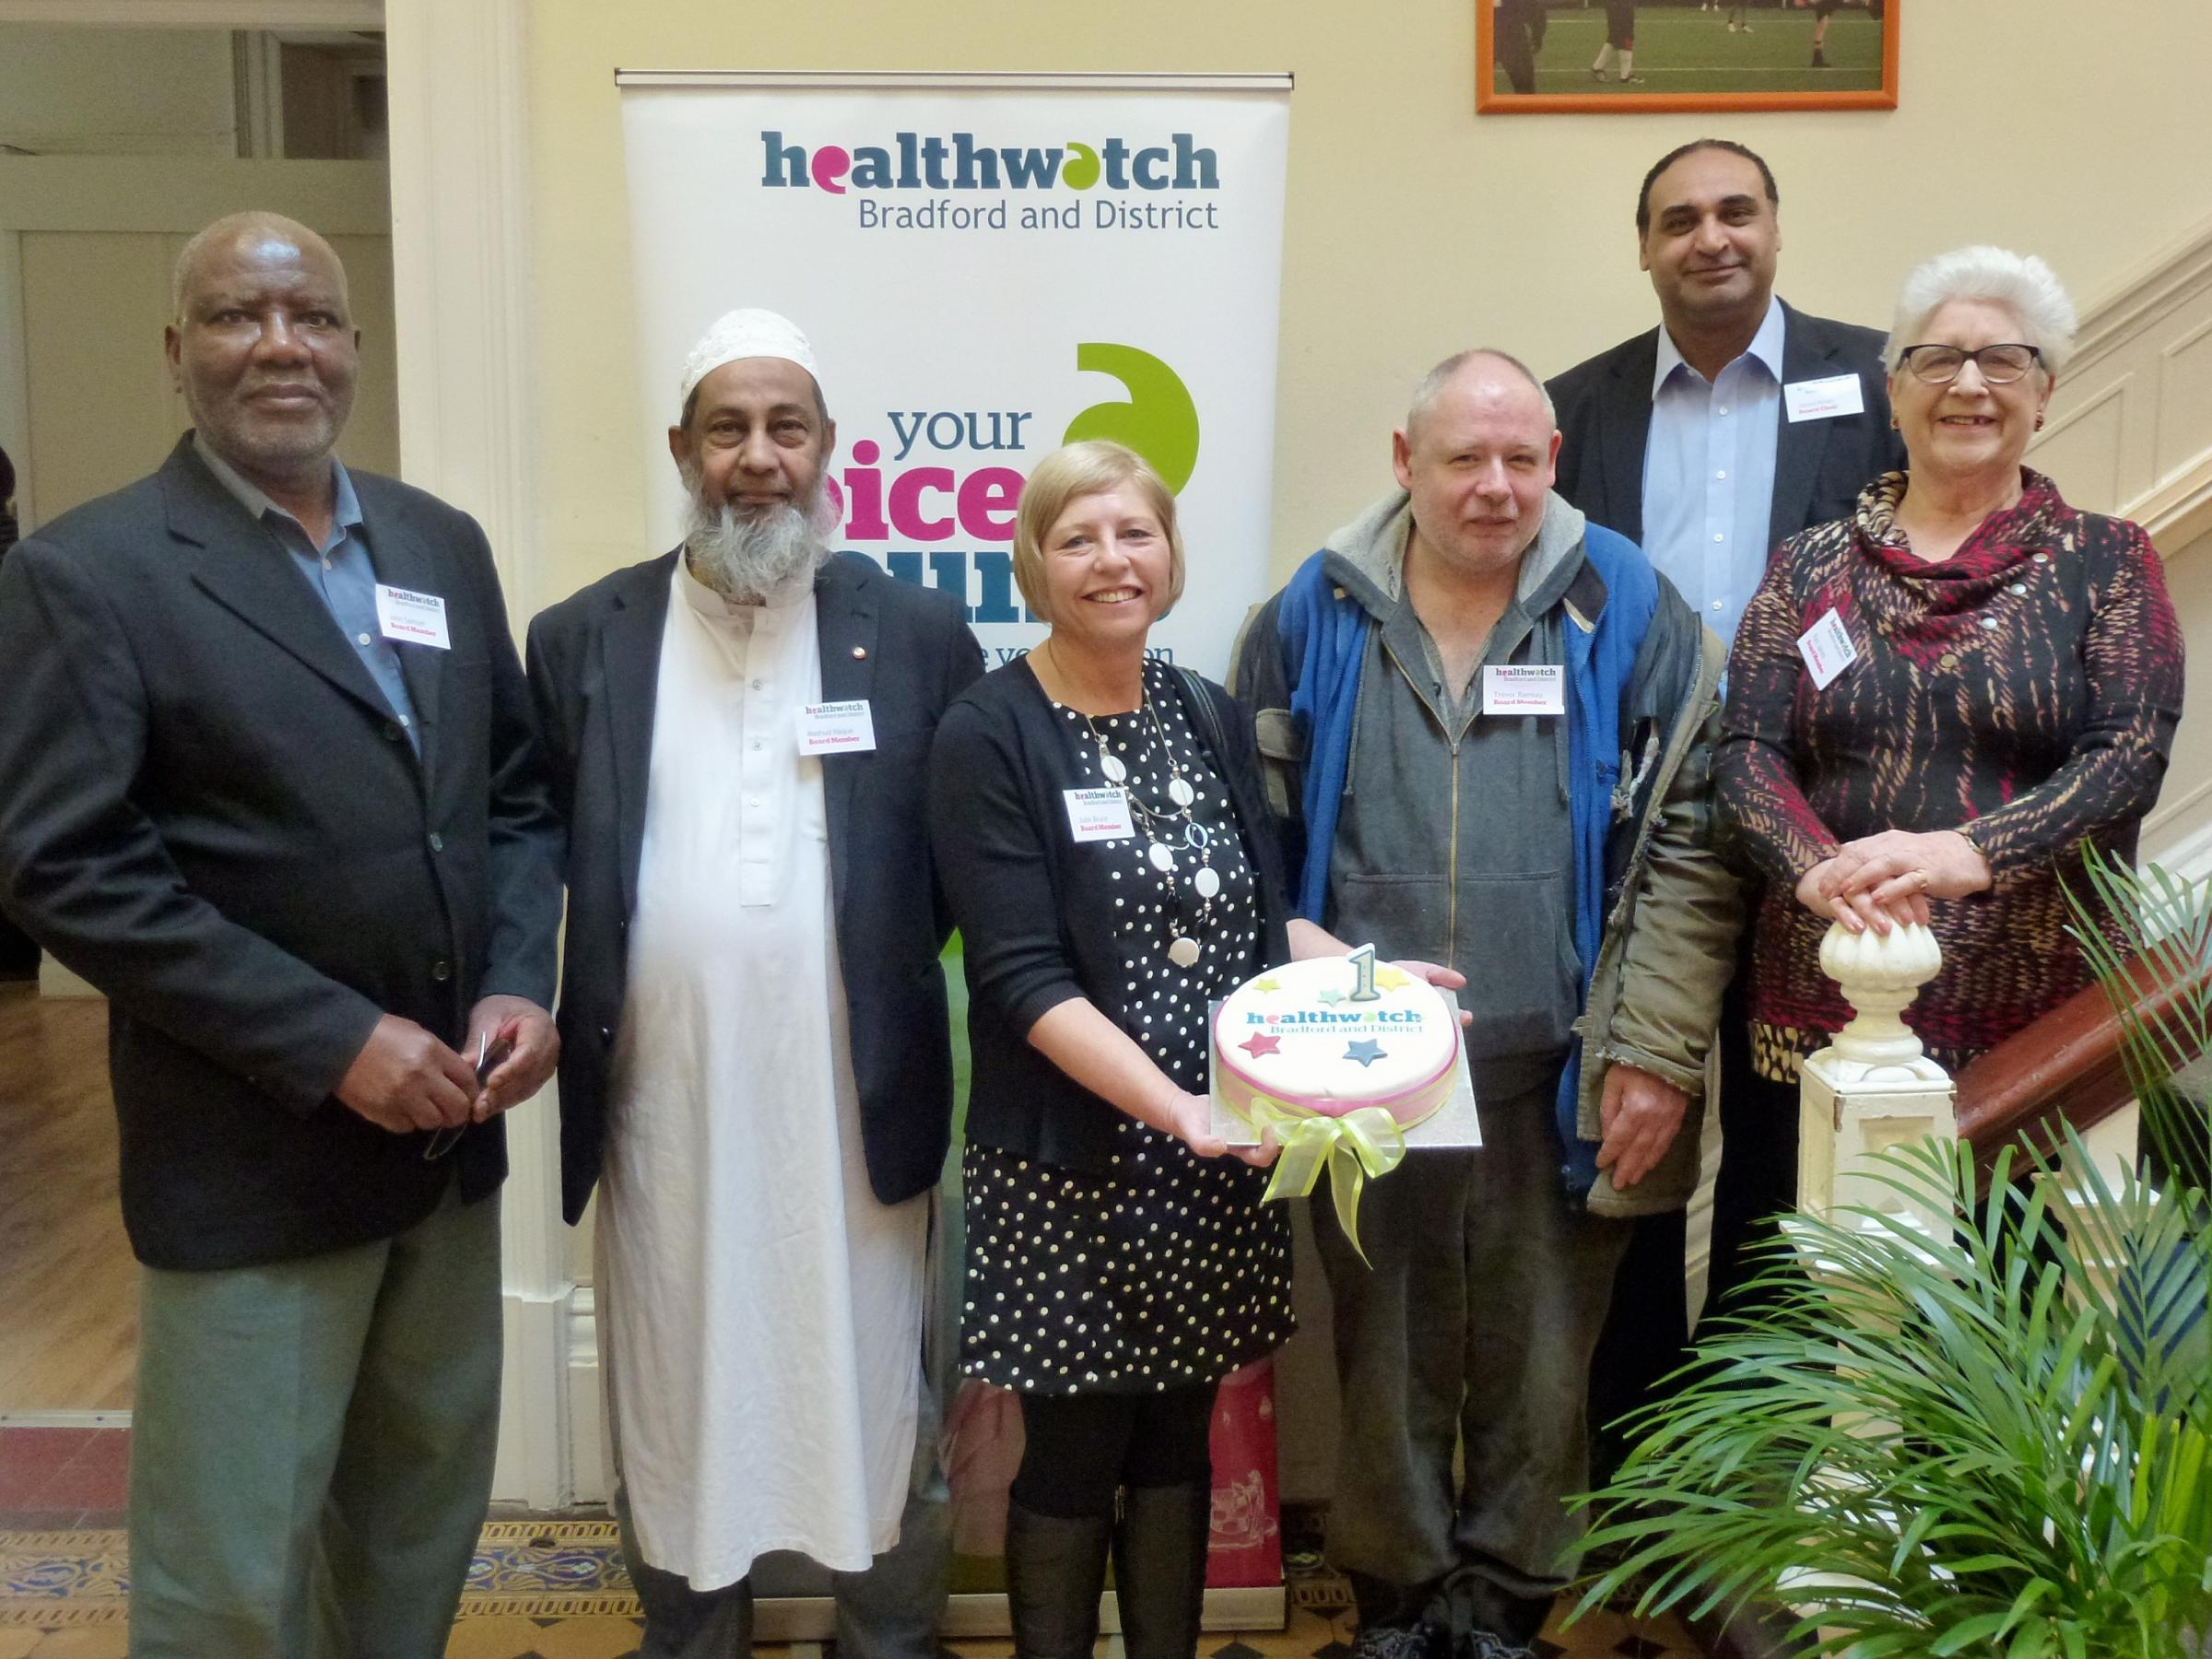 Members of the Healthwatch Bradford and District board, from left, John Samuel, Ma